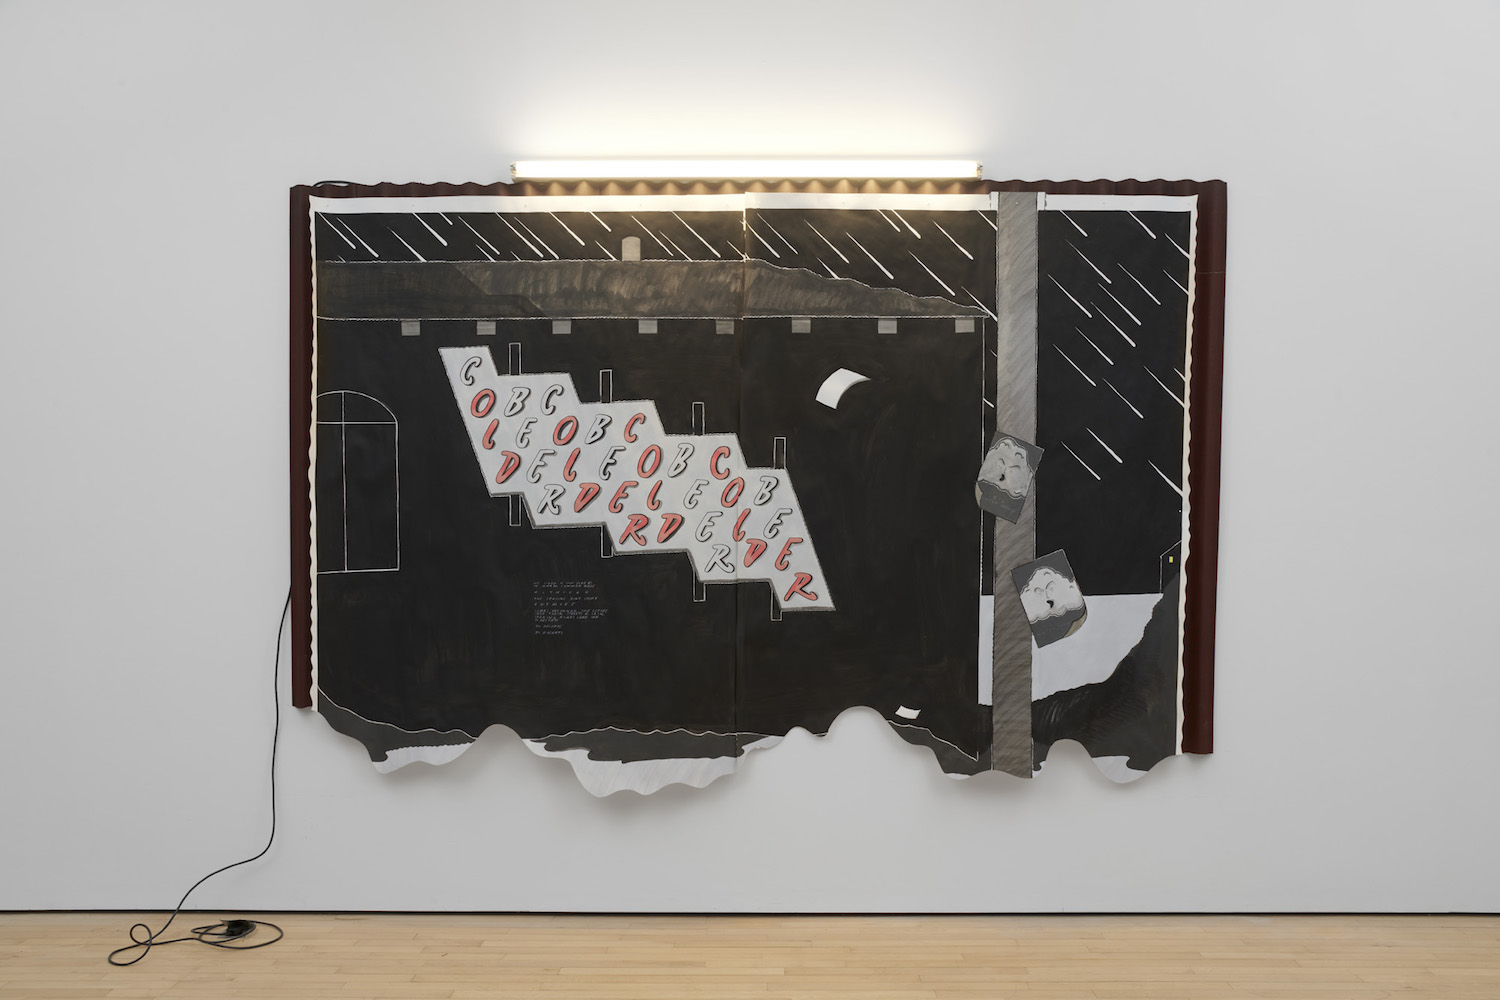 Charlie Godet Thomas, Old Older Cold Colder, 2019. Paint on Fabriano paper, map pins, corrugated bitumin, tape, fluorescent light fittings, fluorescent bulbs, cable flex, lighting gel, mains plugs. 340 x 220 x 5 cm.